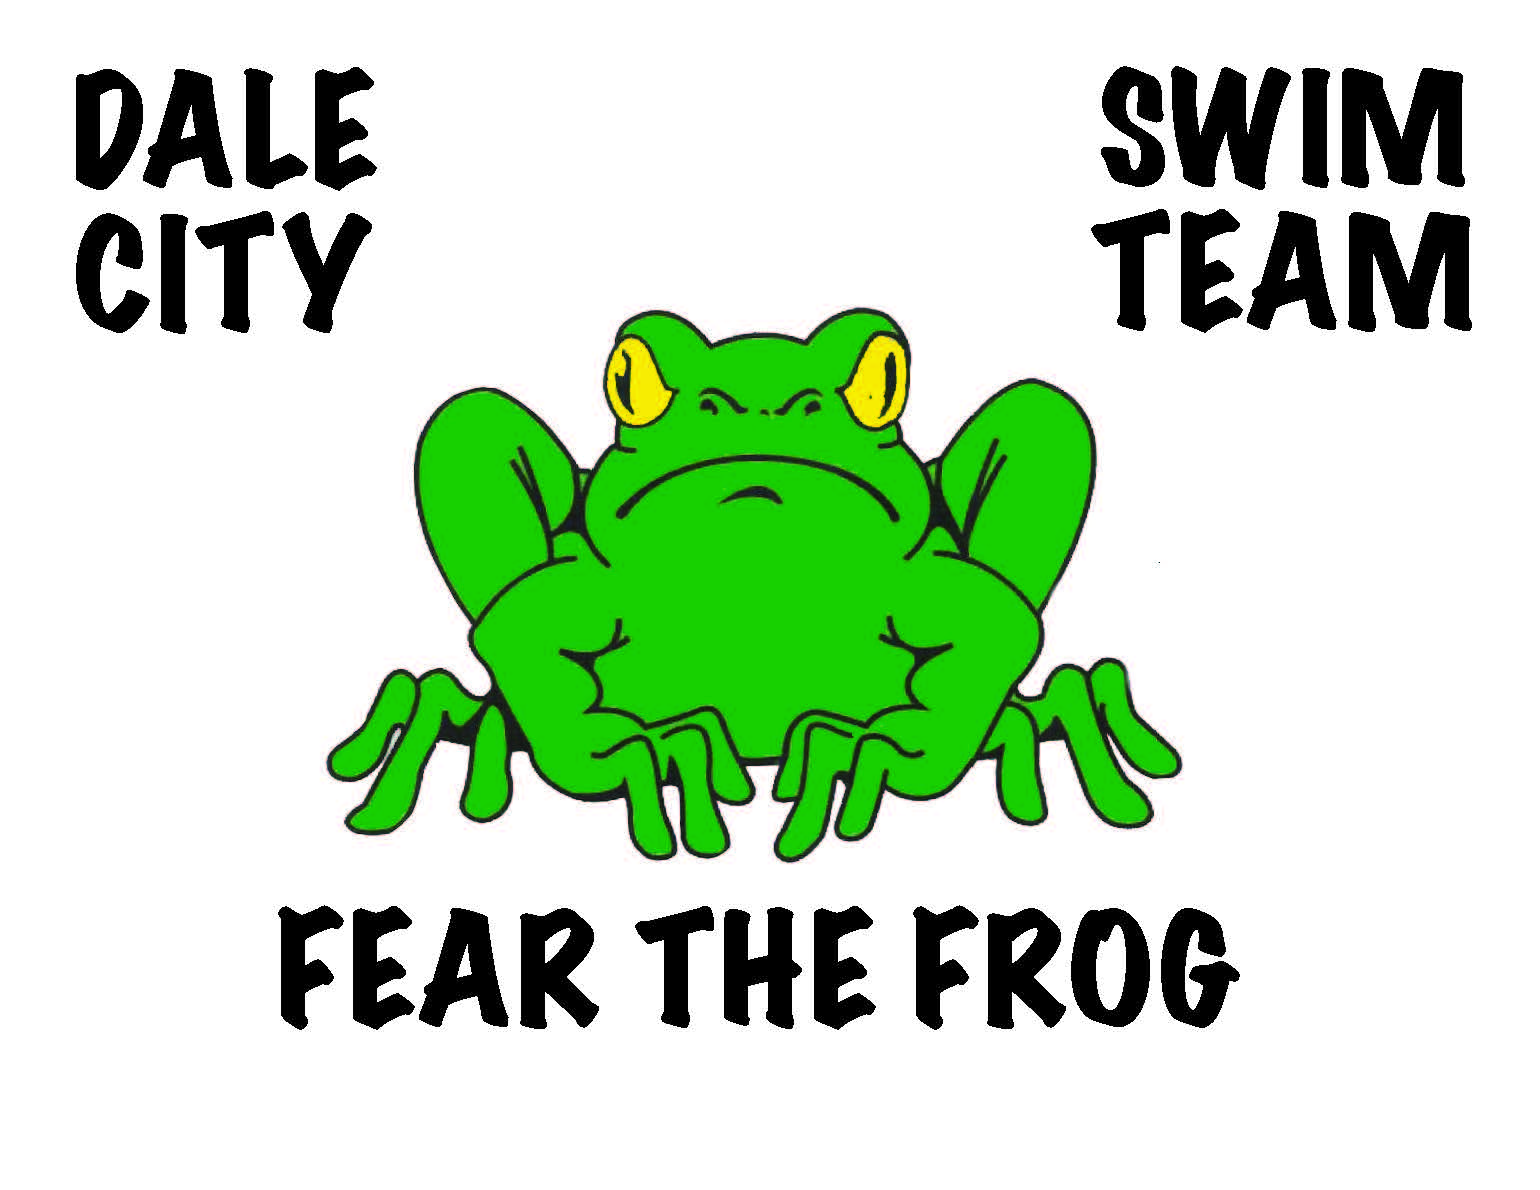 Dale City Frogs